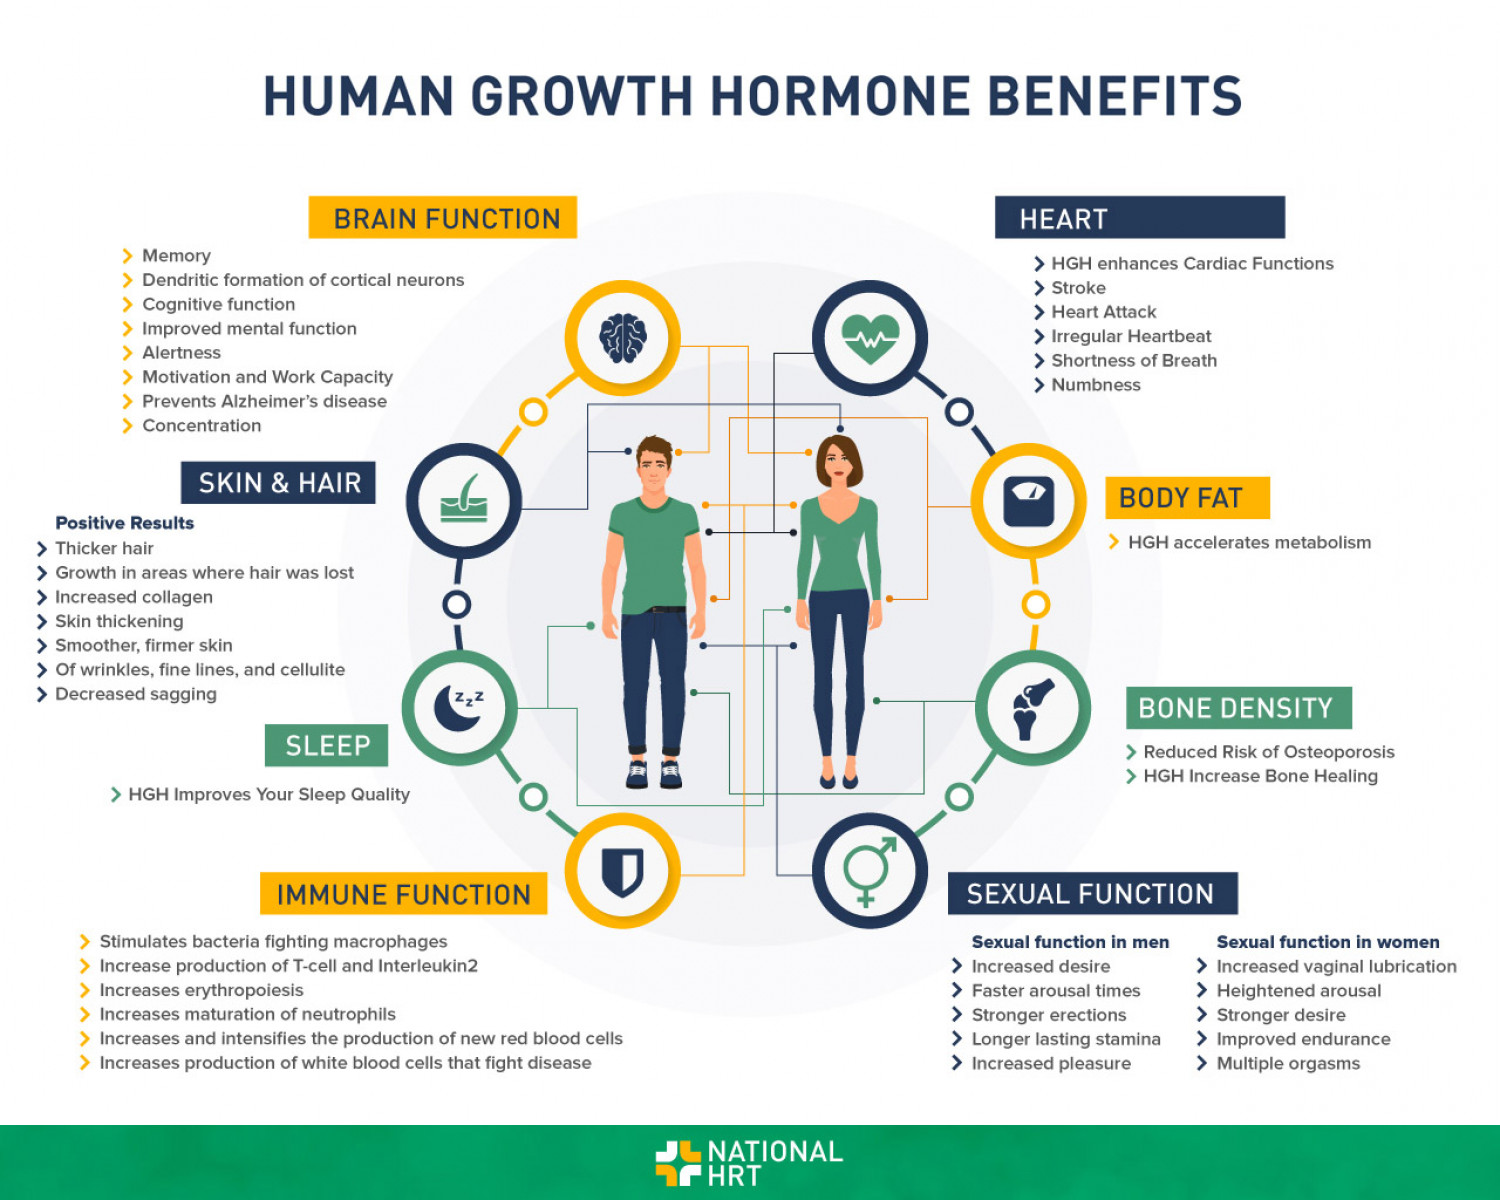 Human Growth Hormone Benefits Infographic